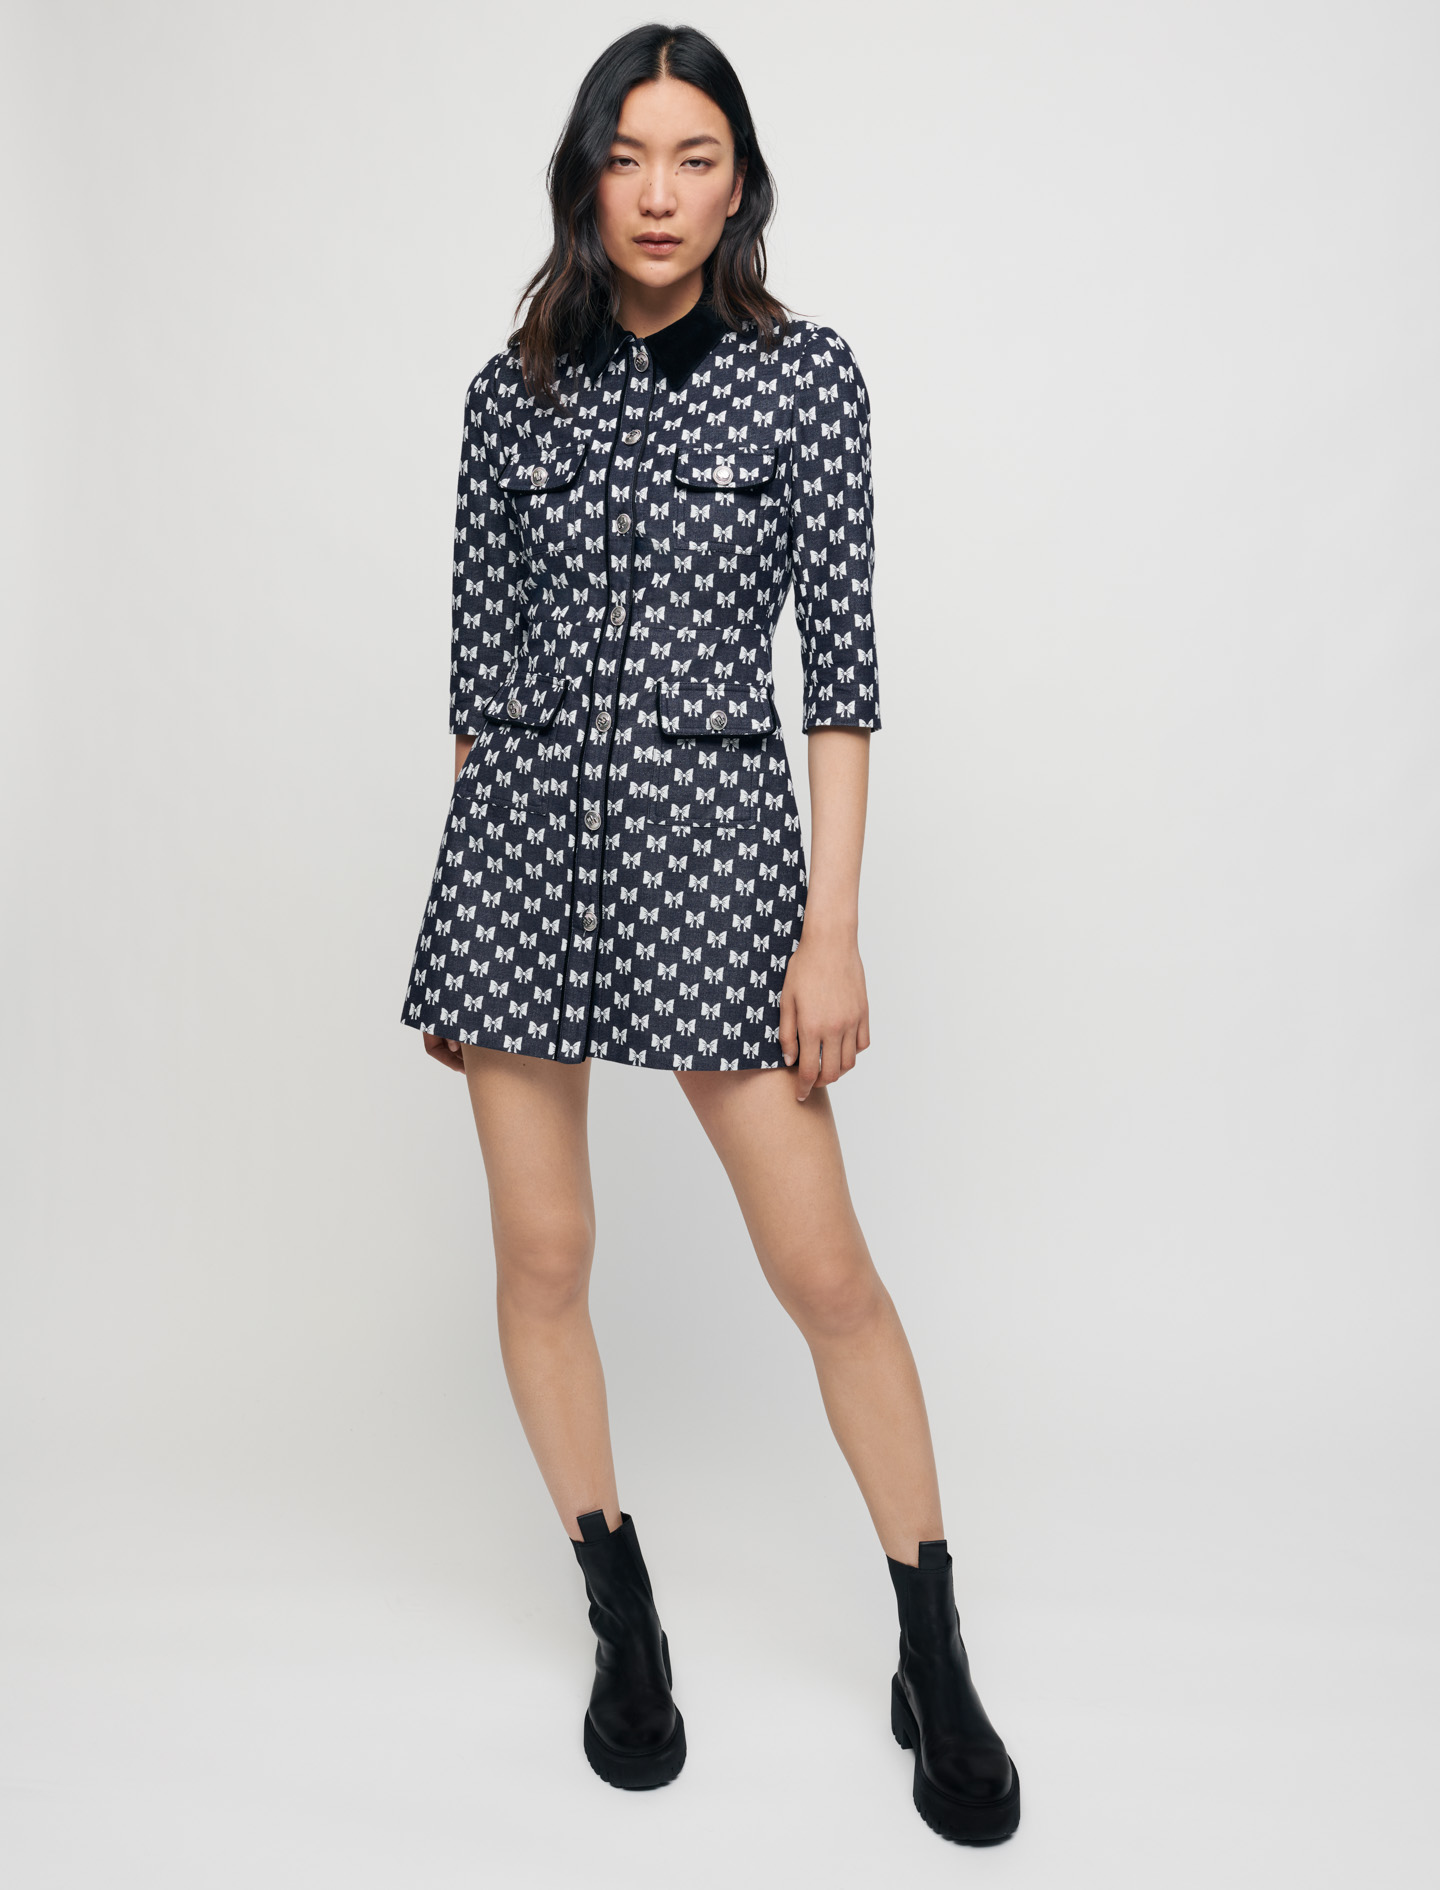 Jacquard dress with bow pattern - Navy